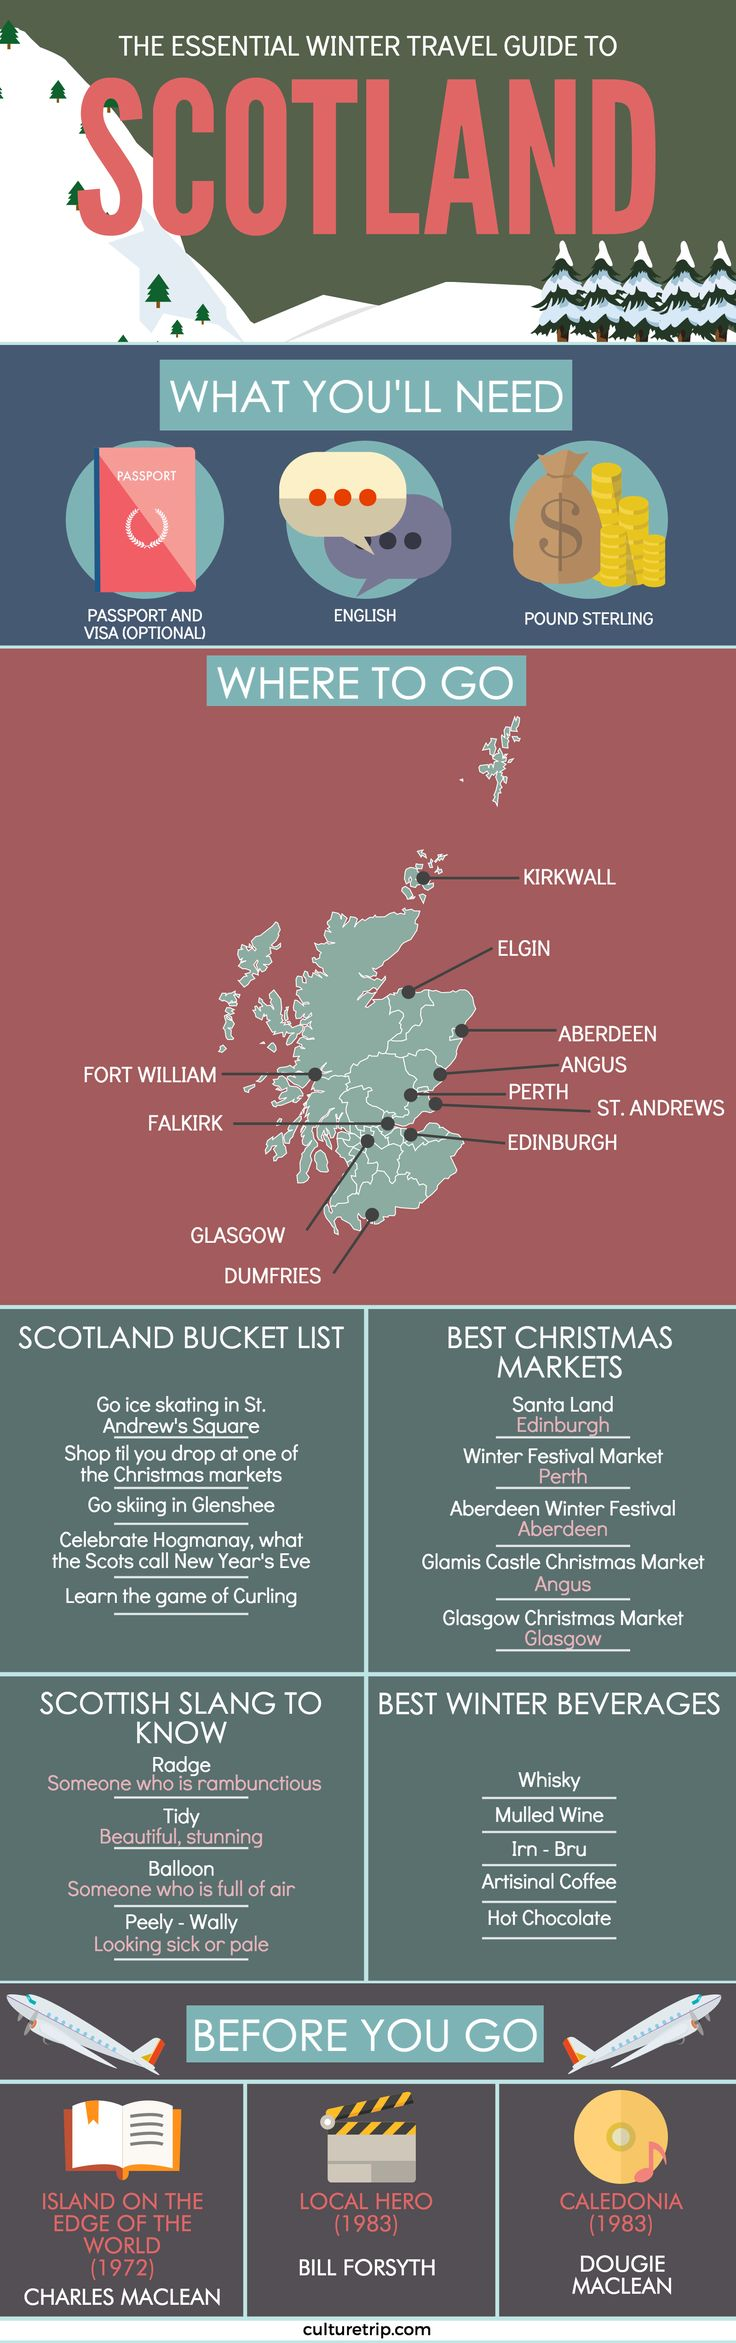 The Essential Travel Guide to Scotland (Infographic)